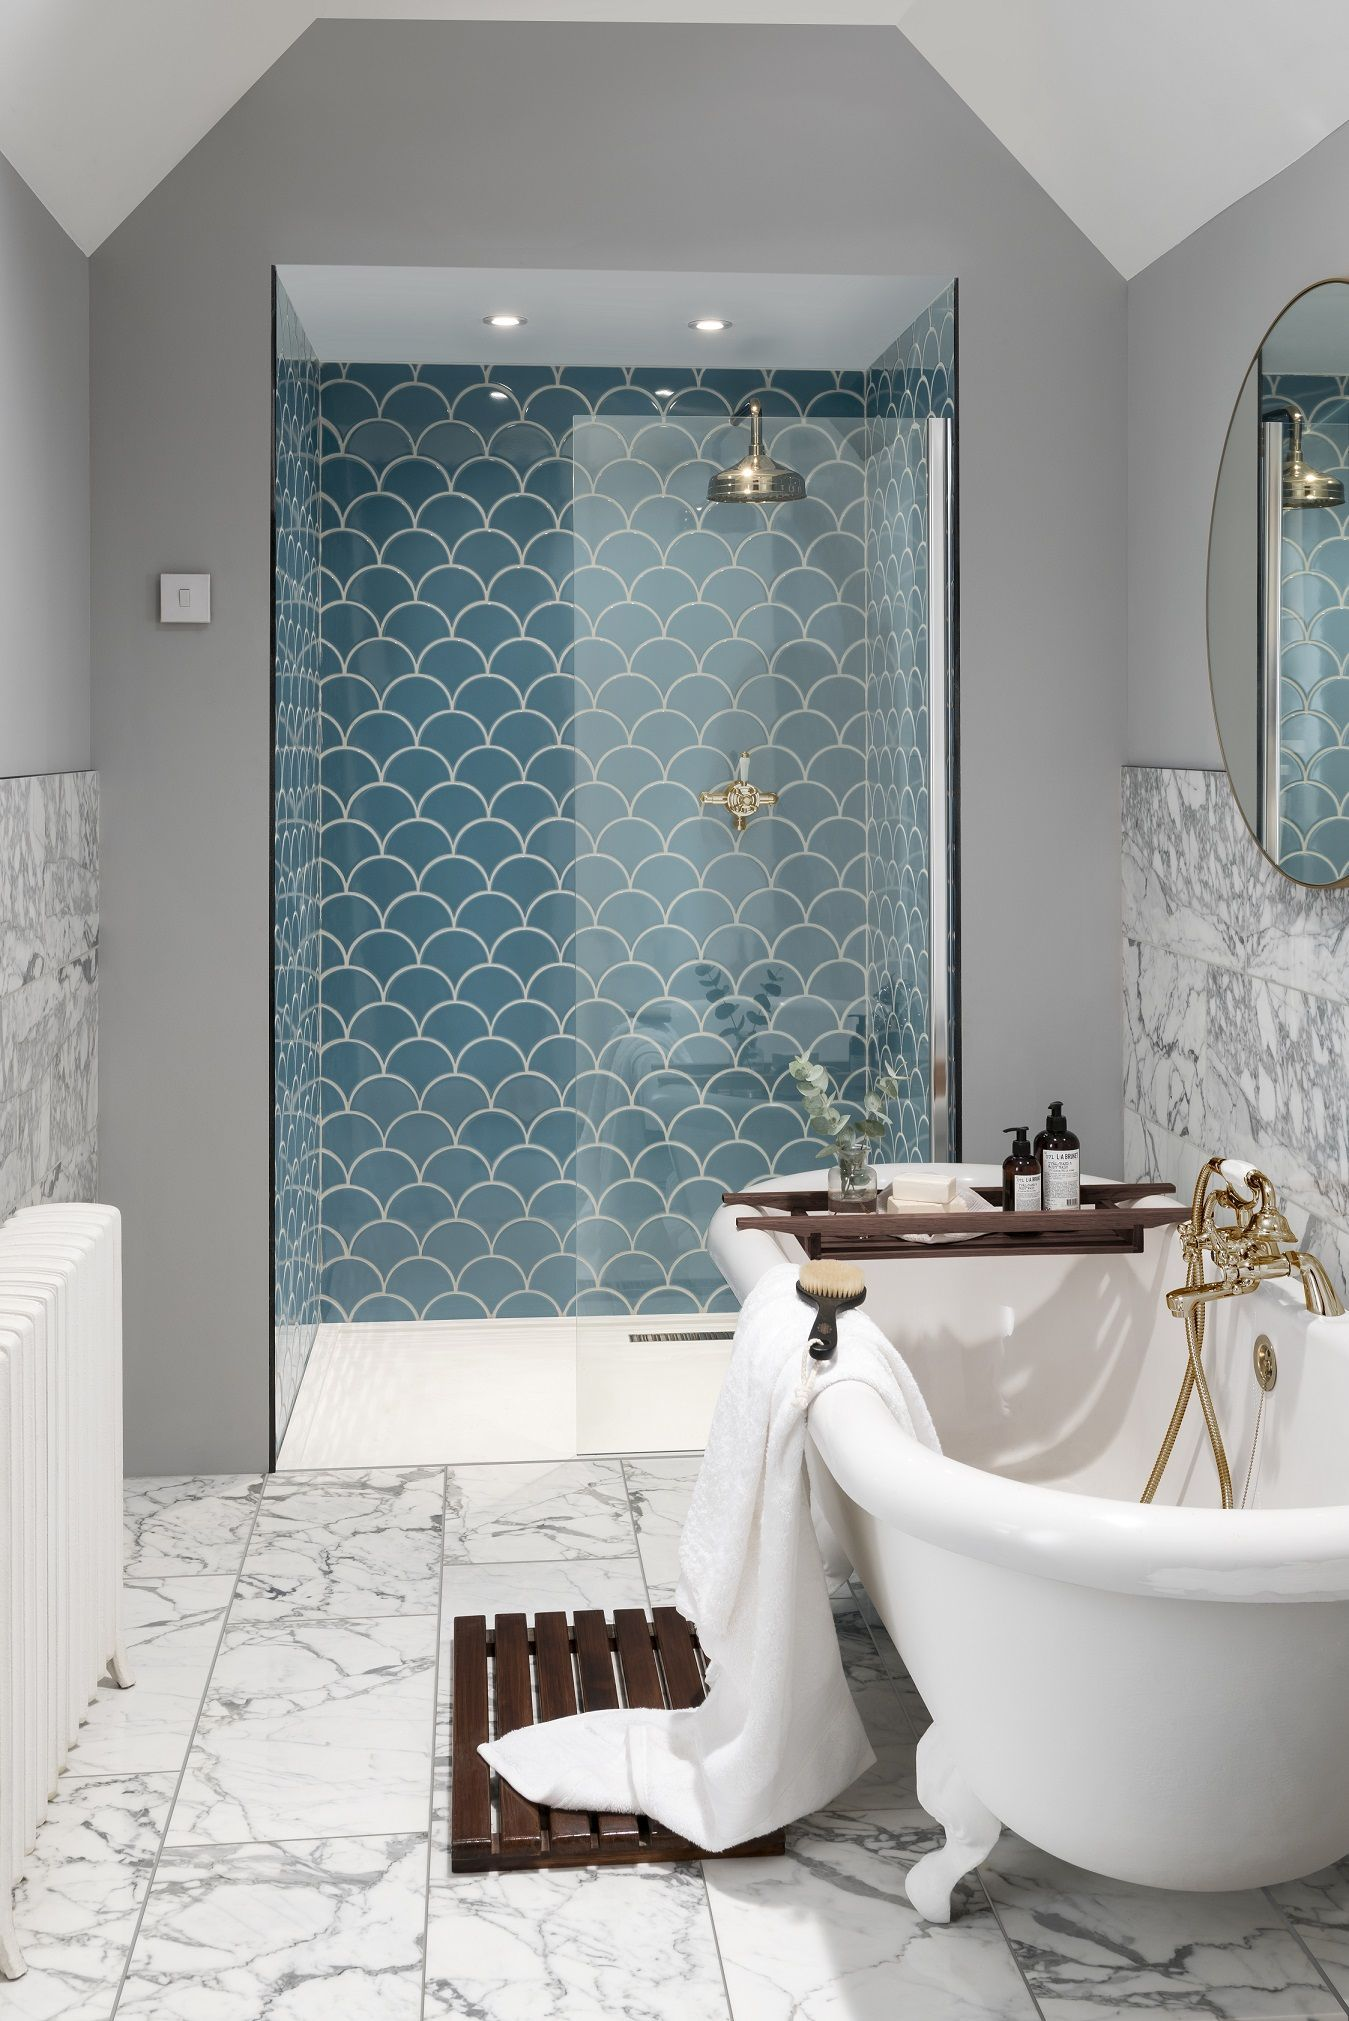 Scallop Tiles Bathroom Go For Beautifully Unique Bathroom Final